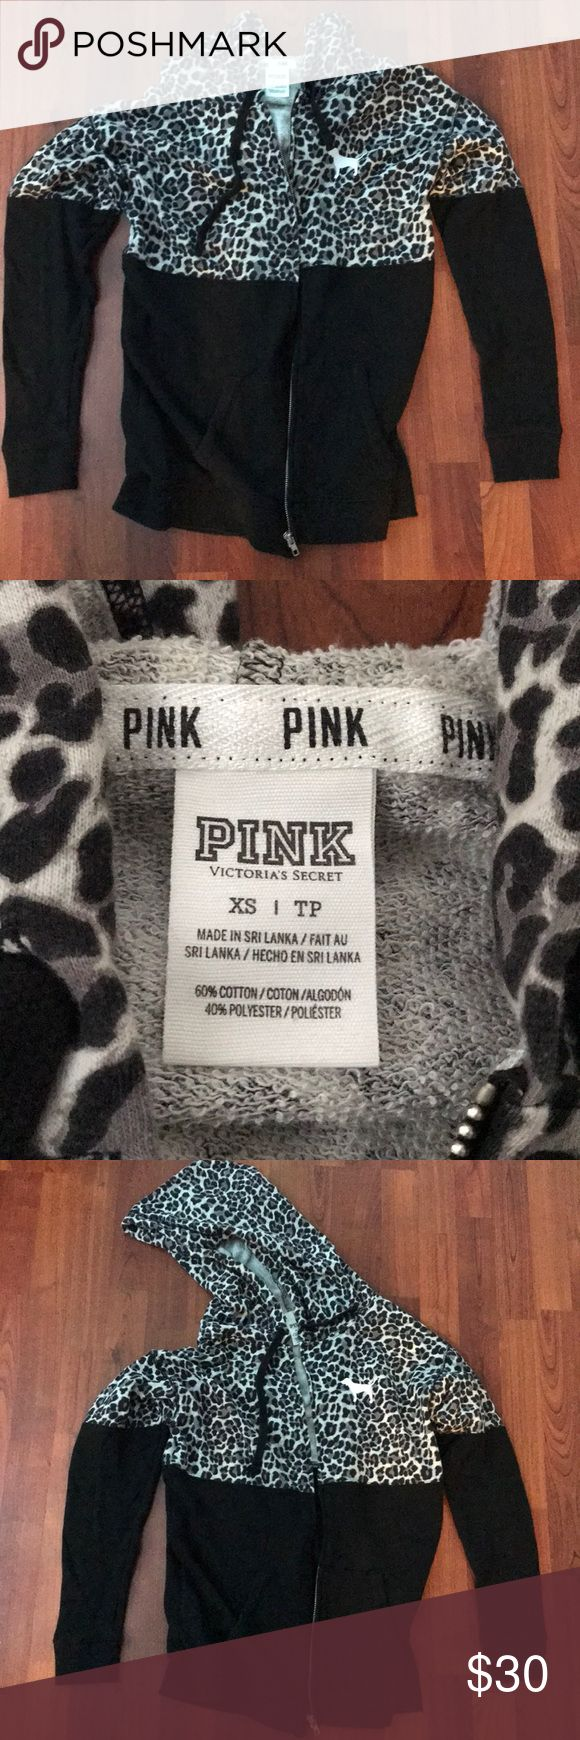 Oversized vs pink zip up In perfect condition! Lightweight oversized PINK zip up. Super cute, just don't wear it. Big drawstring hood. Plain/animal print with dog graphic, back is same as front. No back graphic PINK Tops Sweatshirts & Hoodies